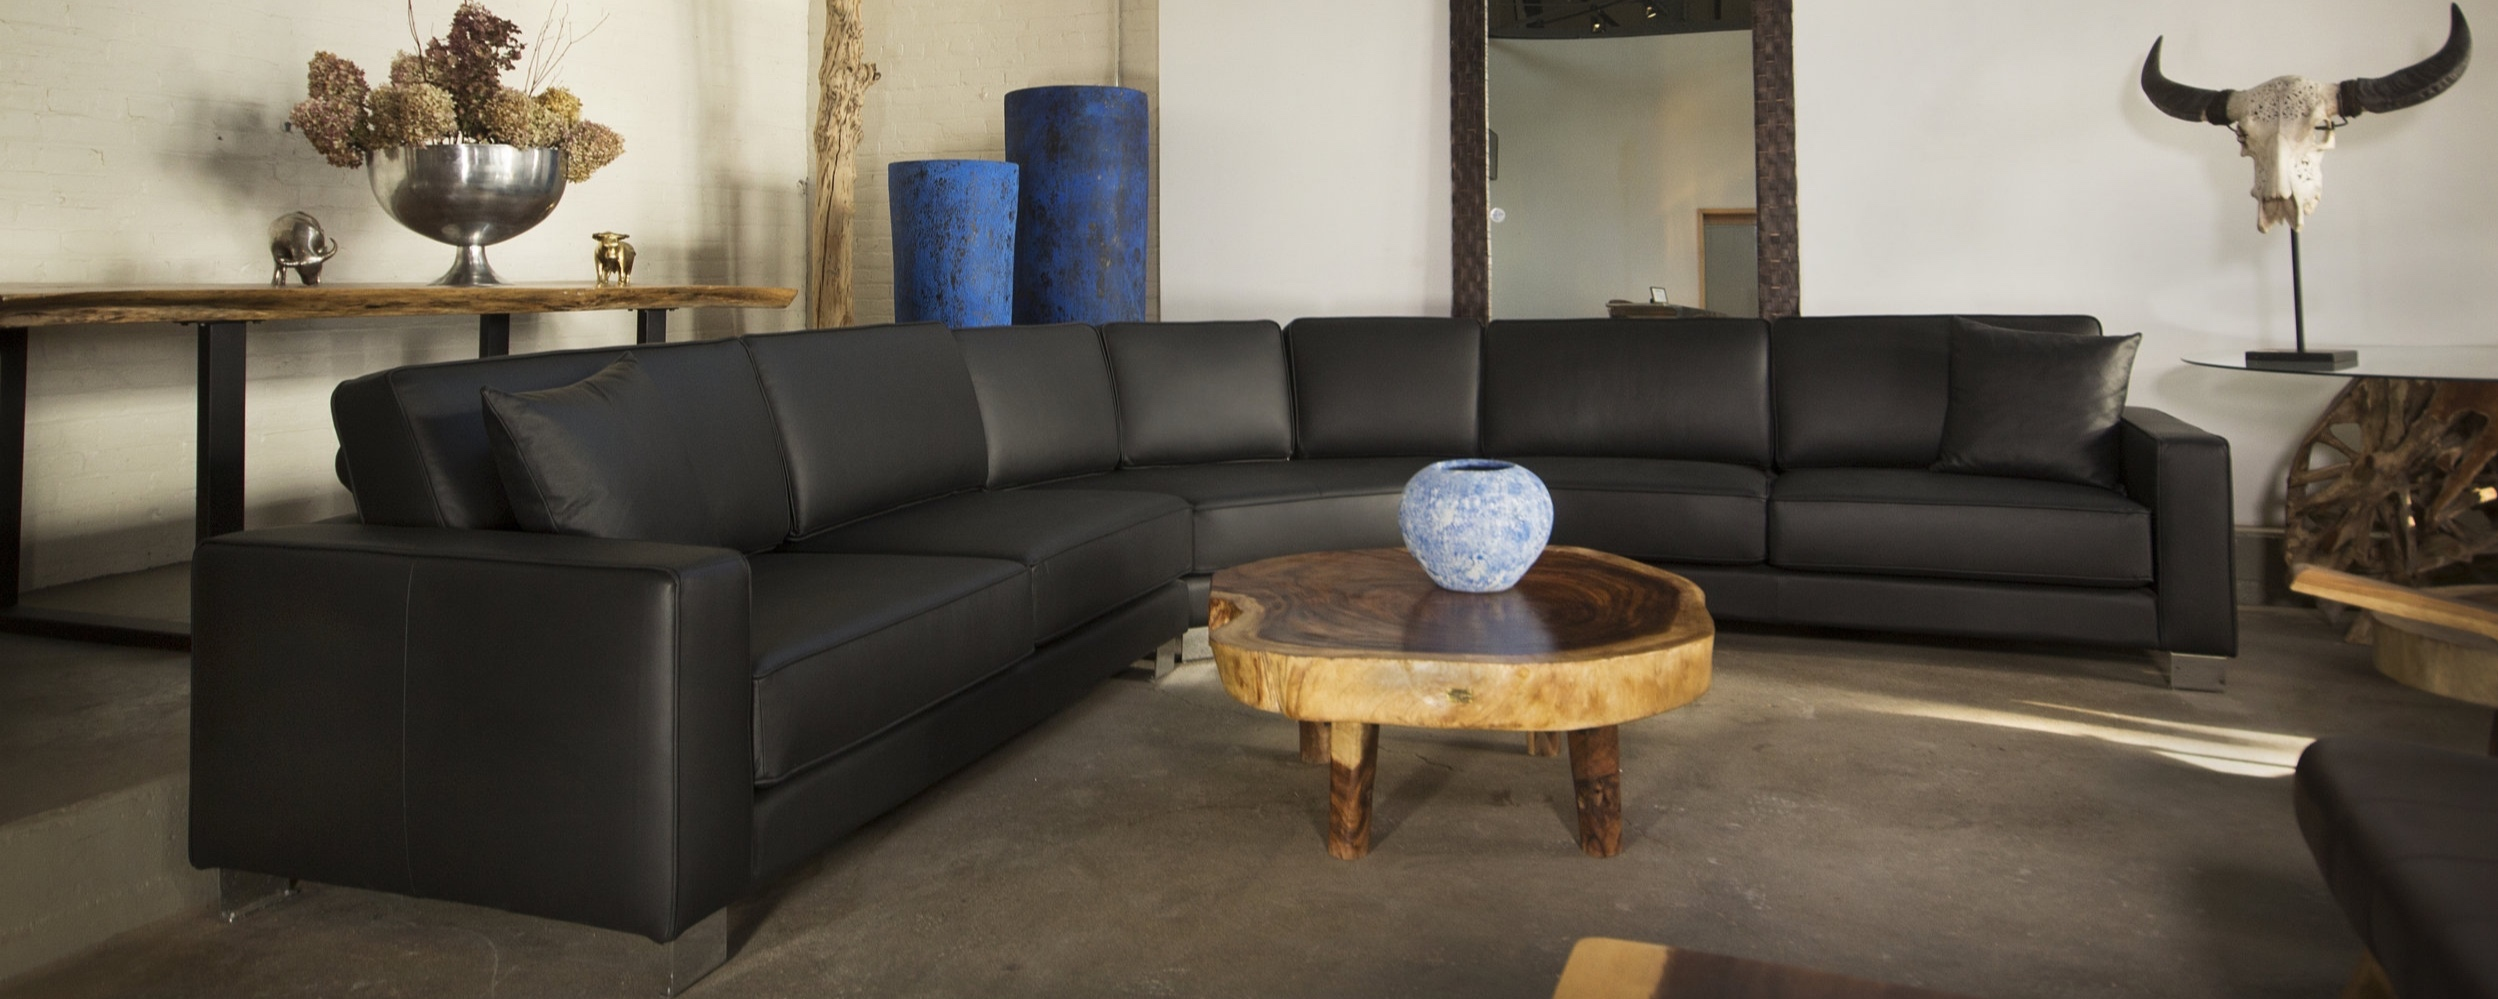 Copy of design 10 sectional in leather